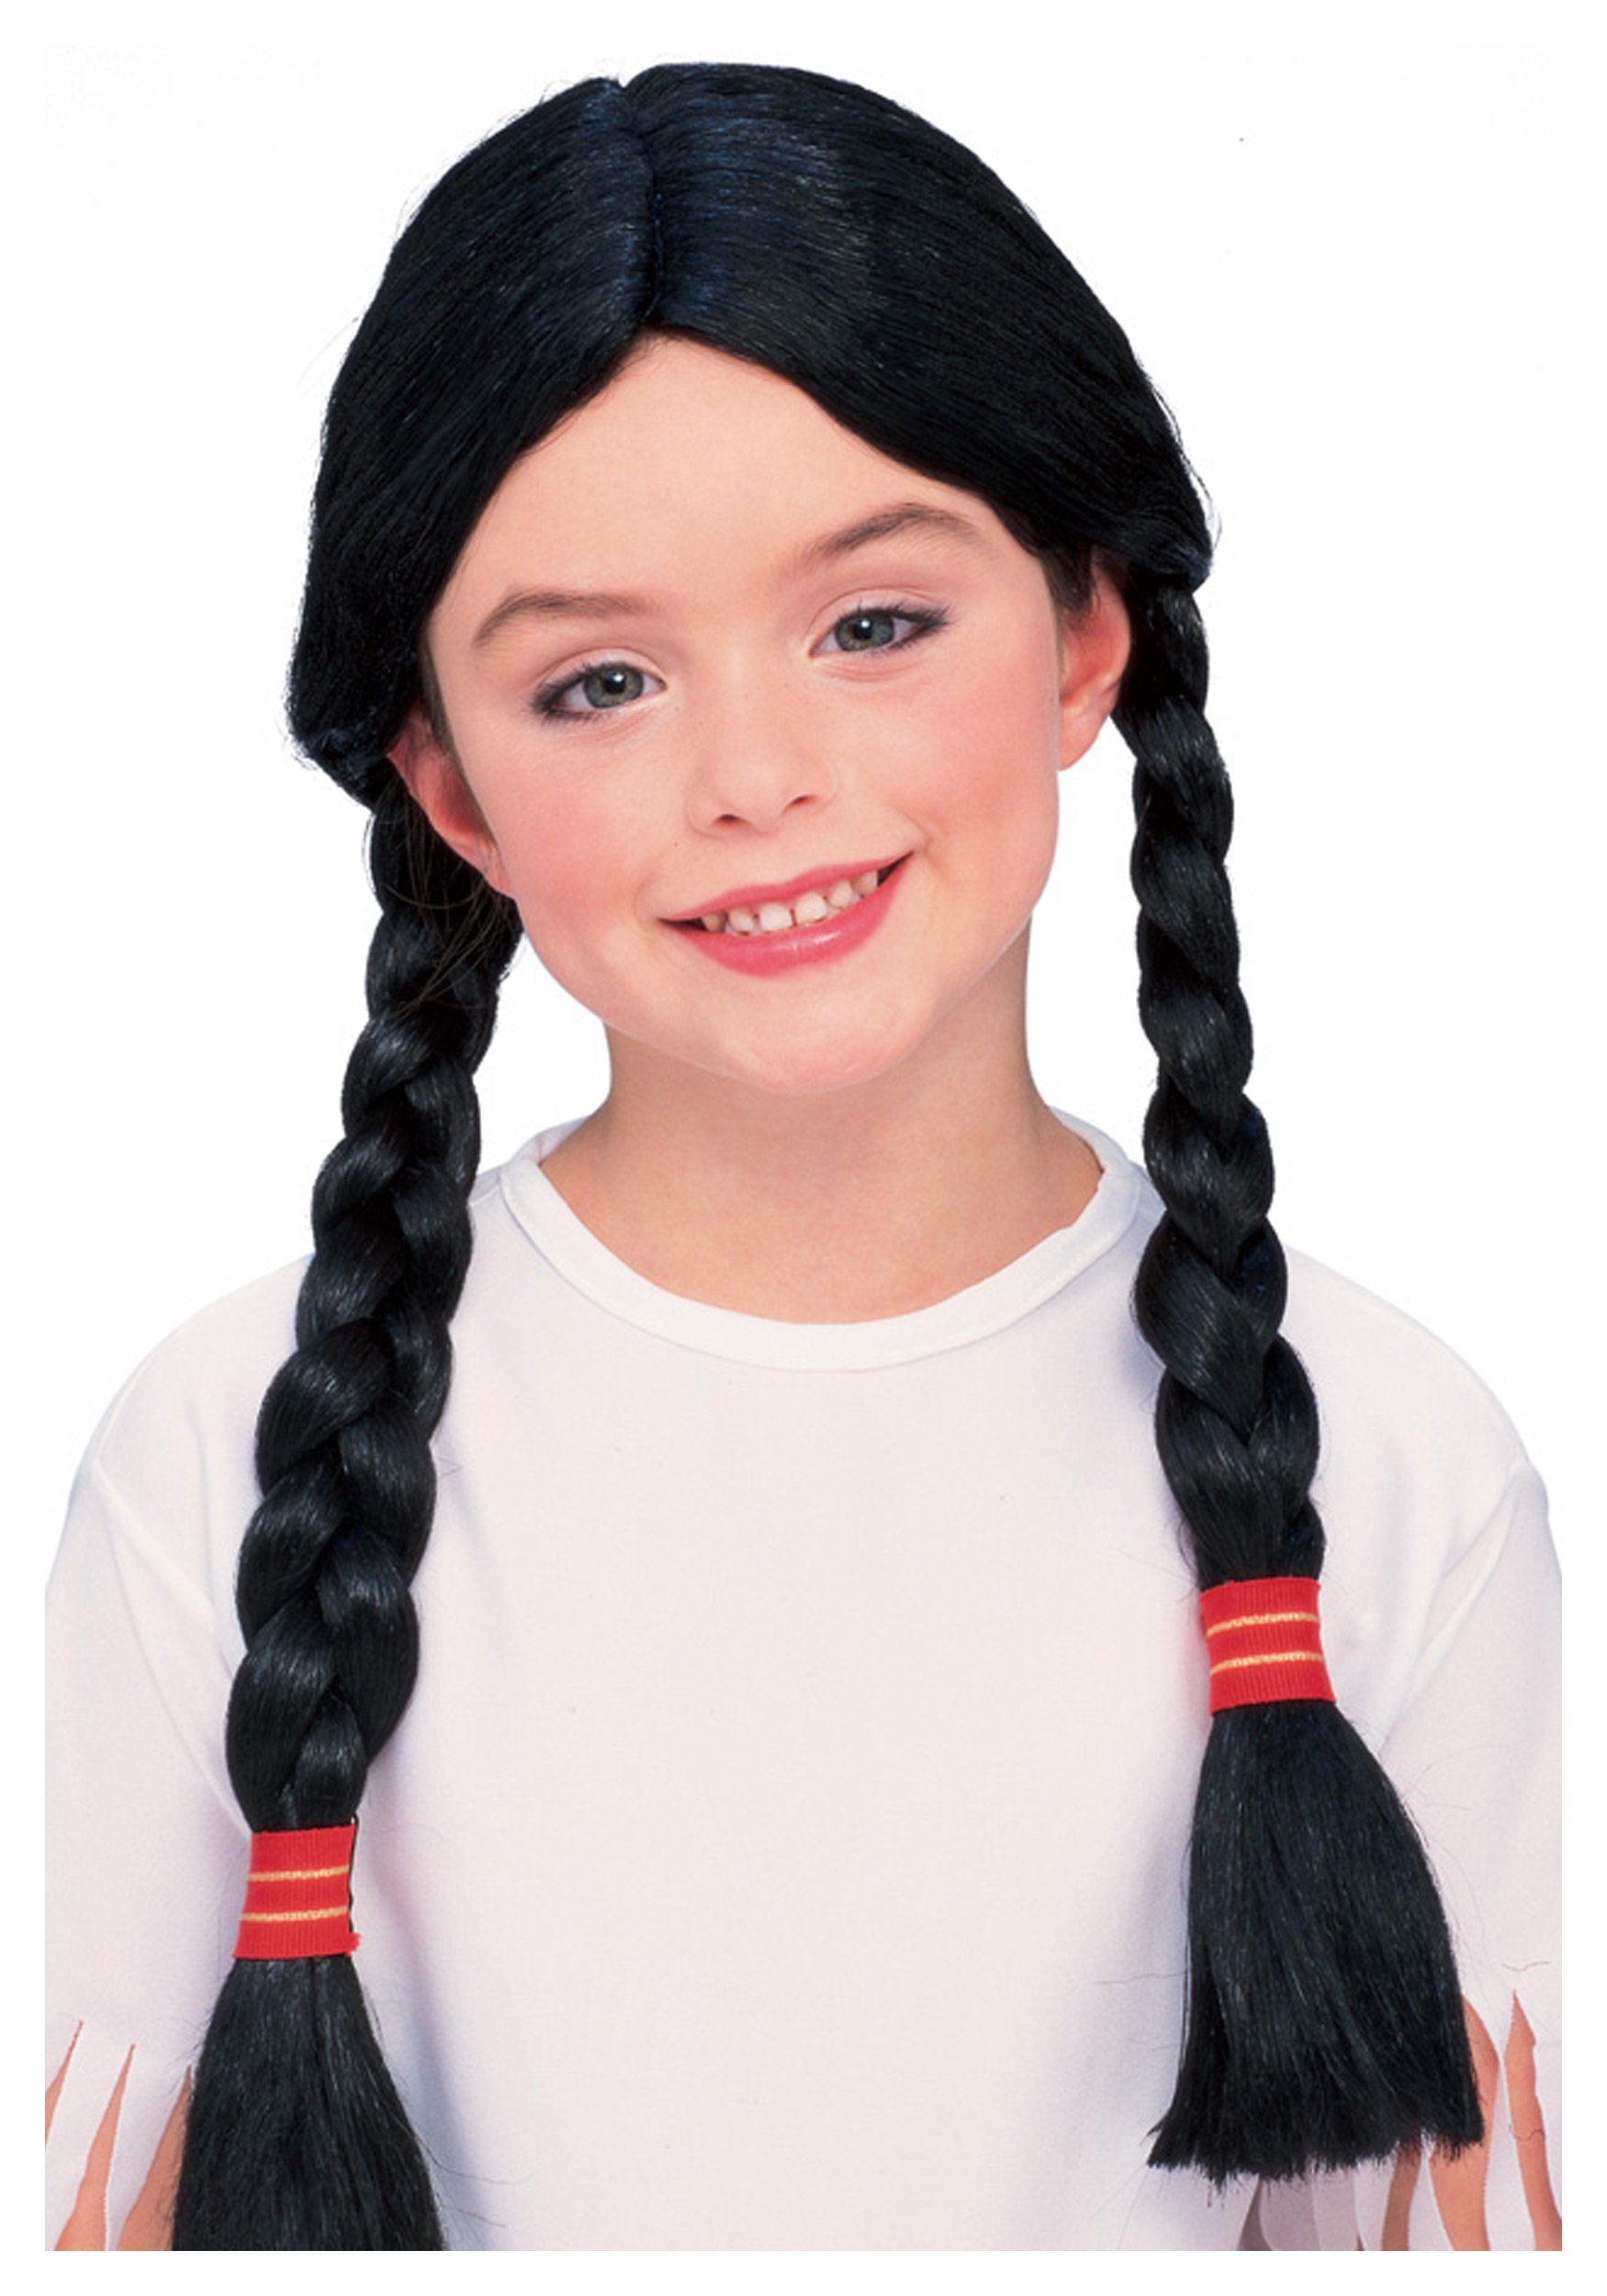 kids native american costume wig - Native American Costume Halloween